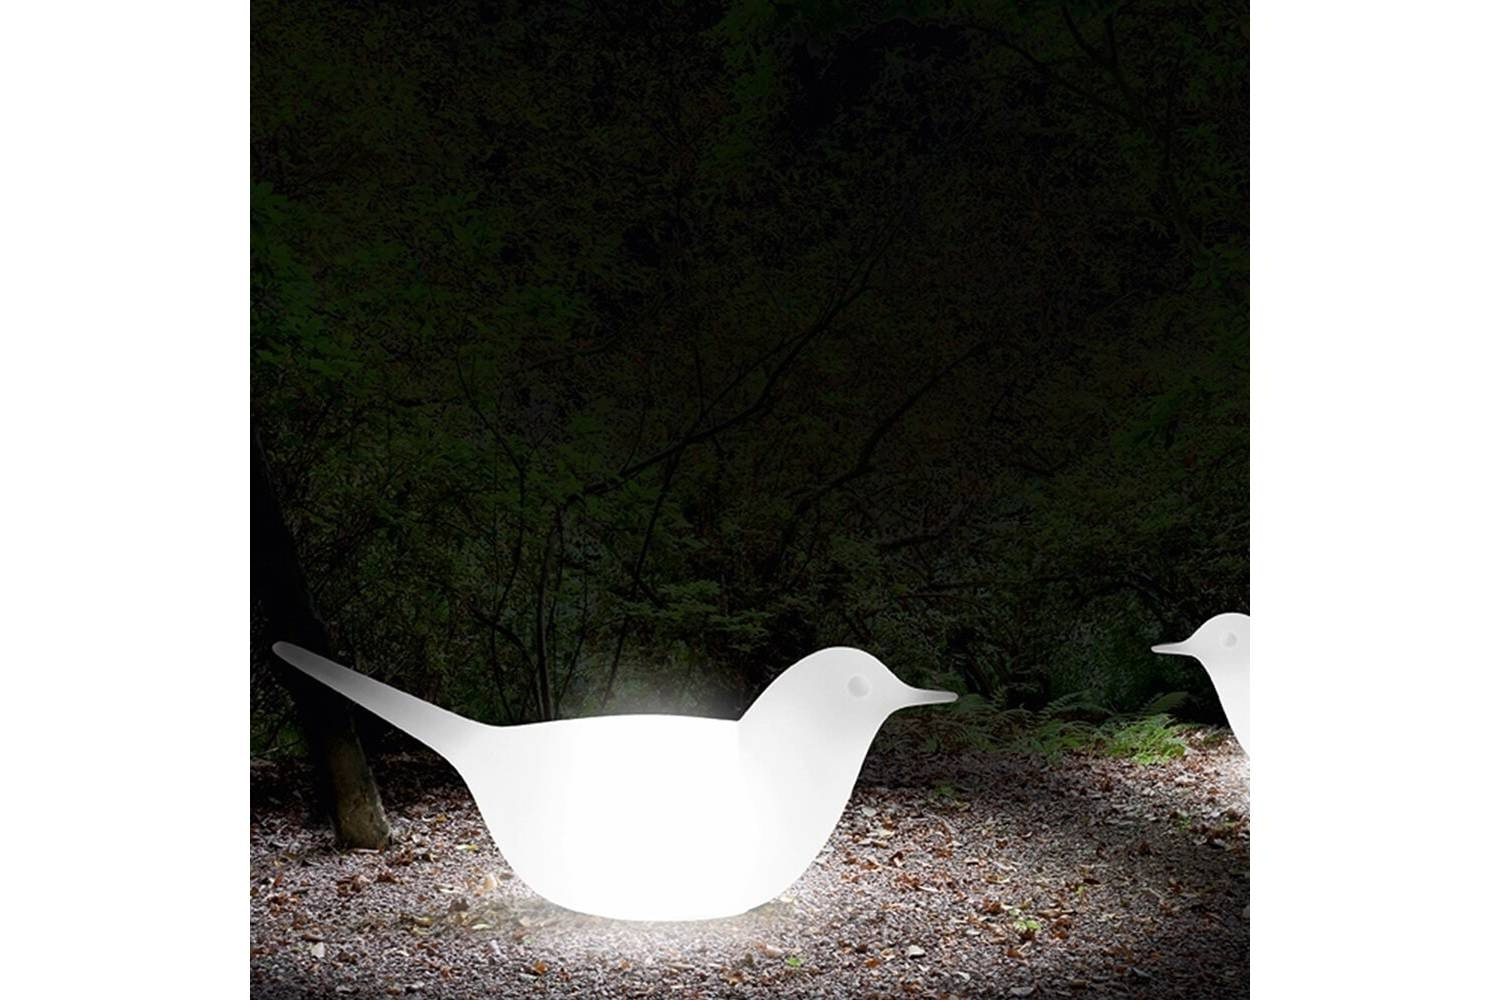 Paloma Bird with Light by Eero Aarnio for Serralunga